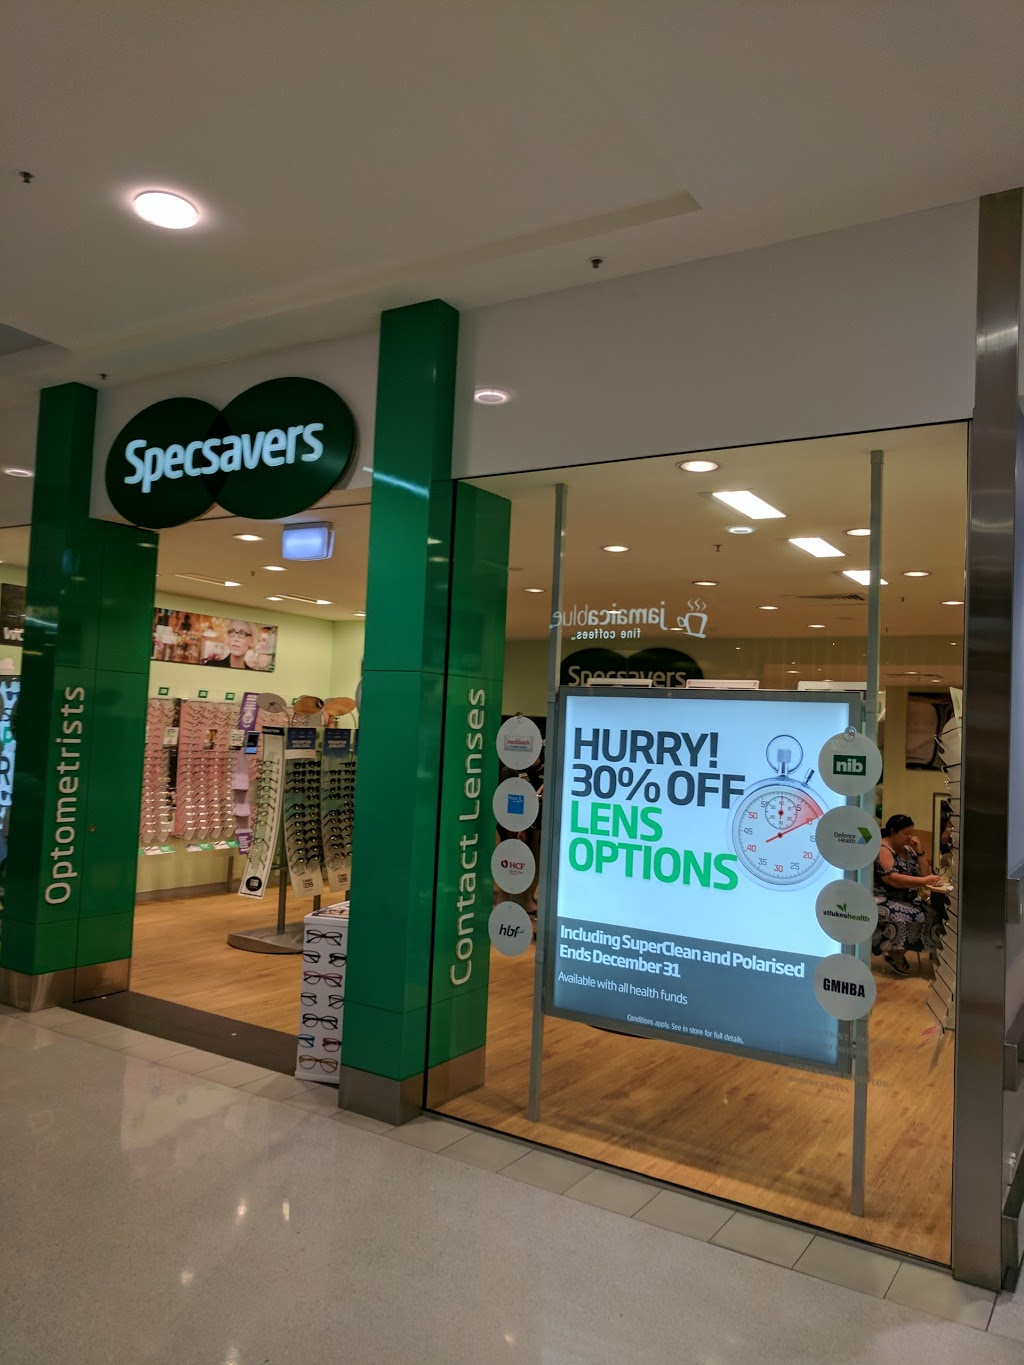 Specsavers Optometrists - Townsville Castletown | store | Castletown Shoppingworld, Cnr Woolcock & Kings Rd, Pimlico QLD 4812, Australia | 0747210500 OR +61 7 4721 0500